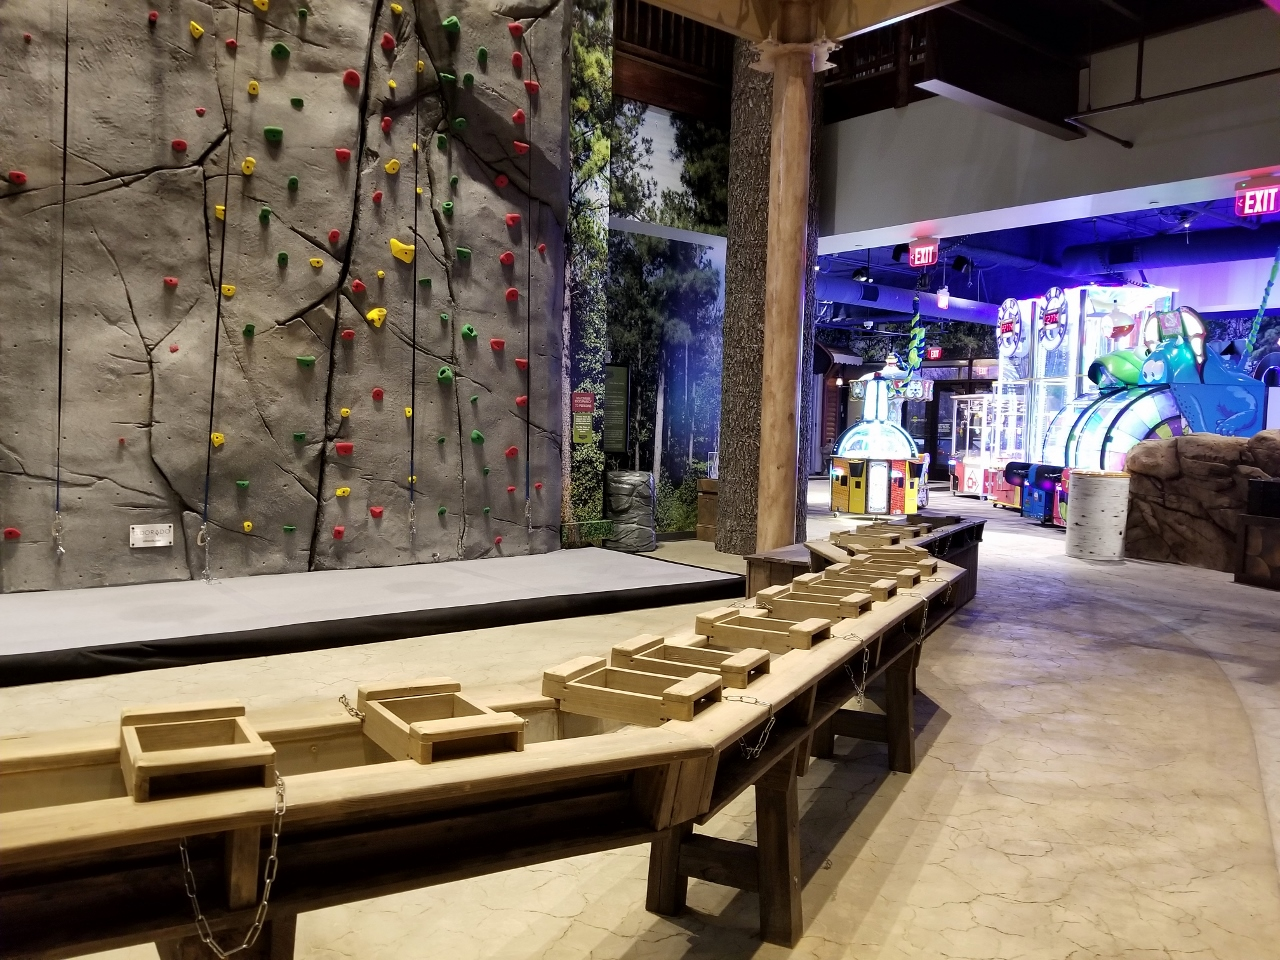 The climbing wall at great wolf lodge in bloomington minnesota